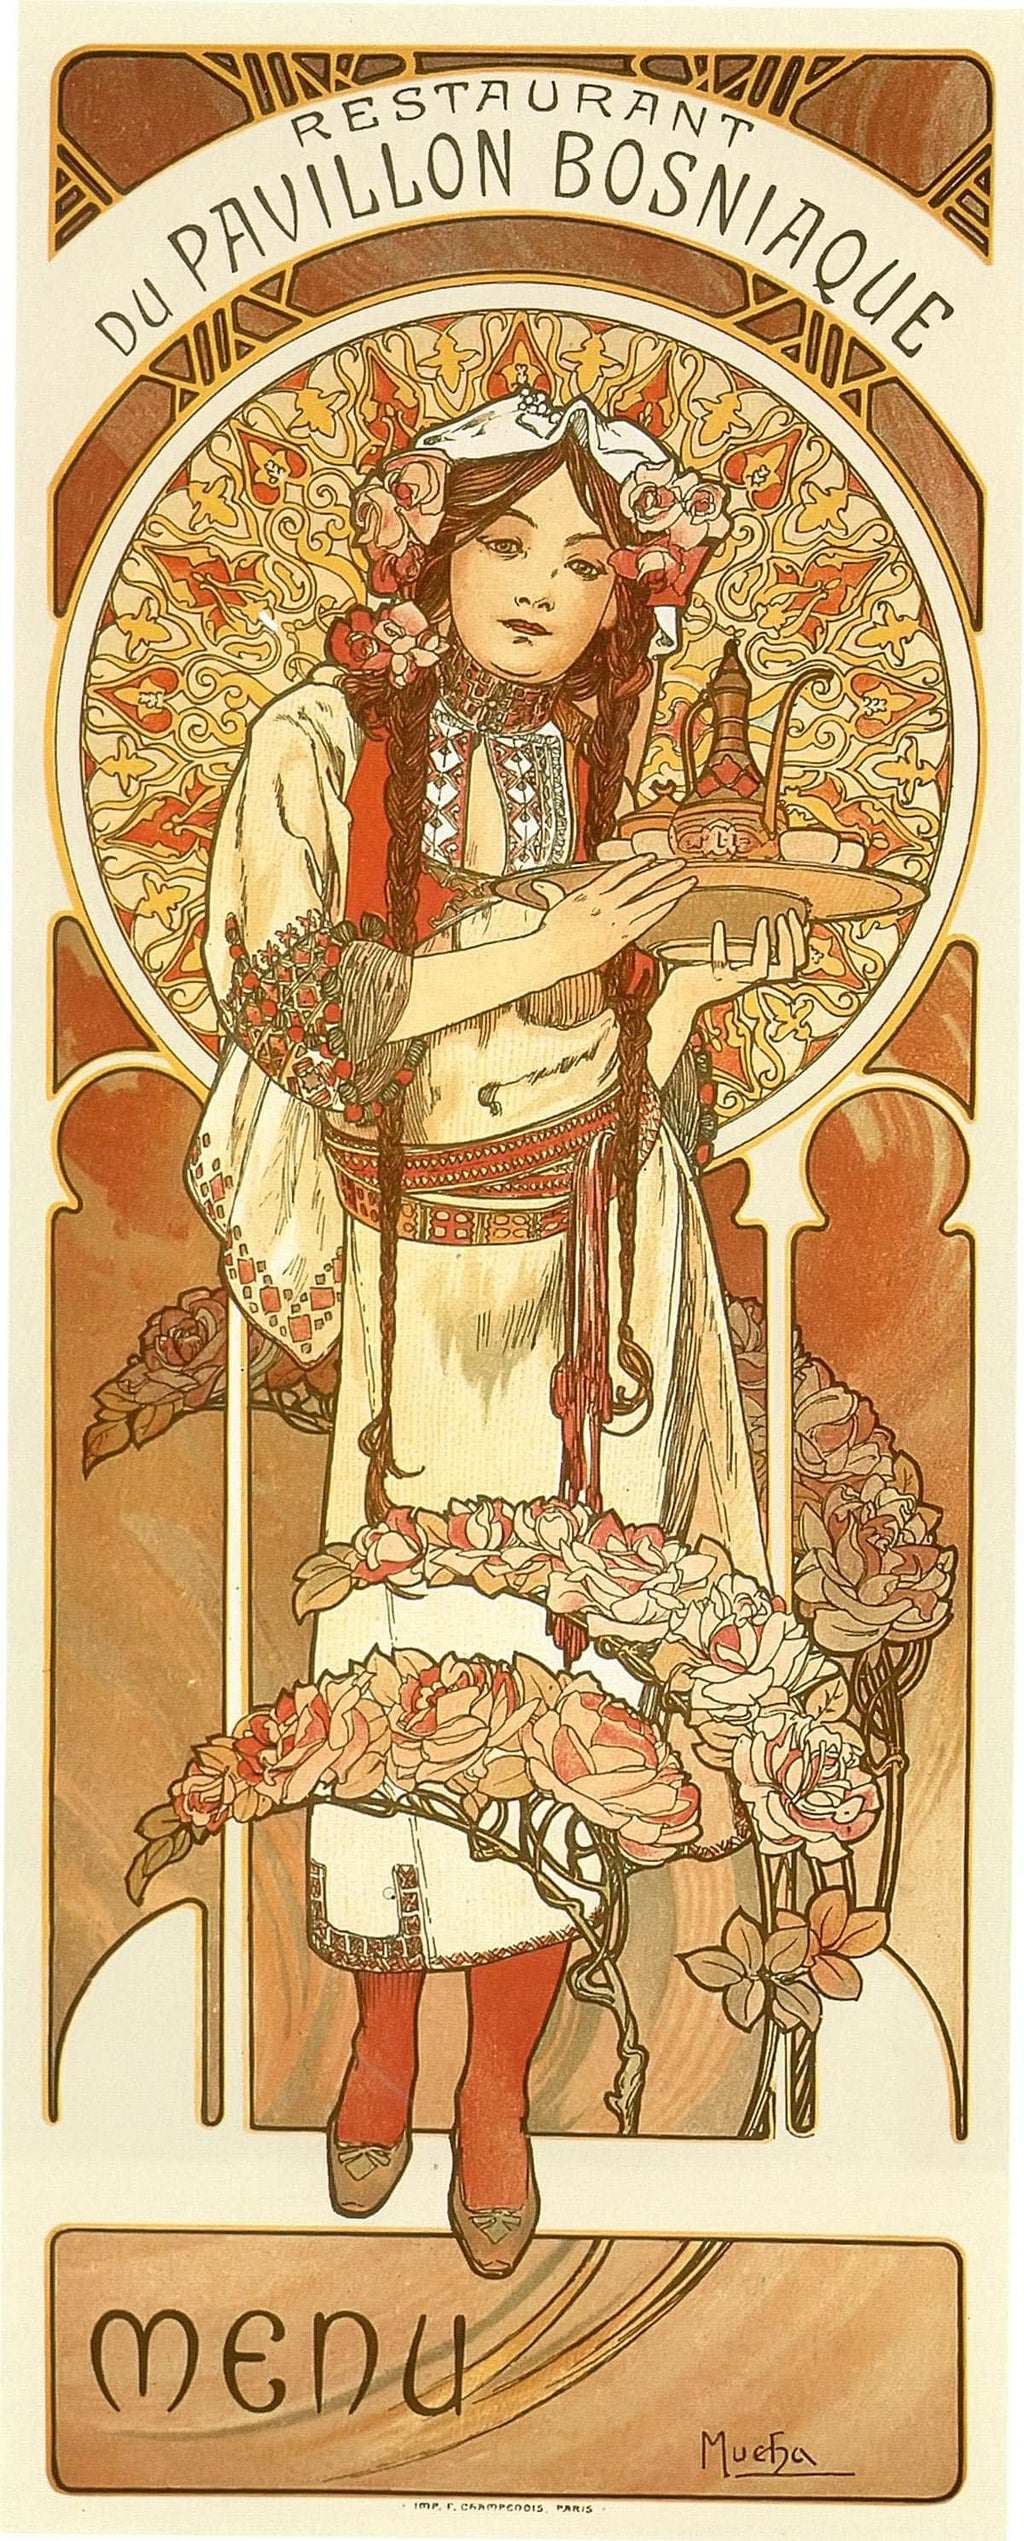 Restaurant Du Pavillion Bosniaque Menu by Alphonse Mucha